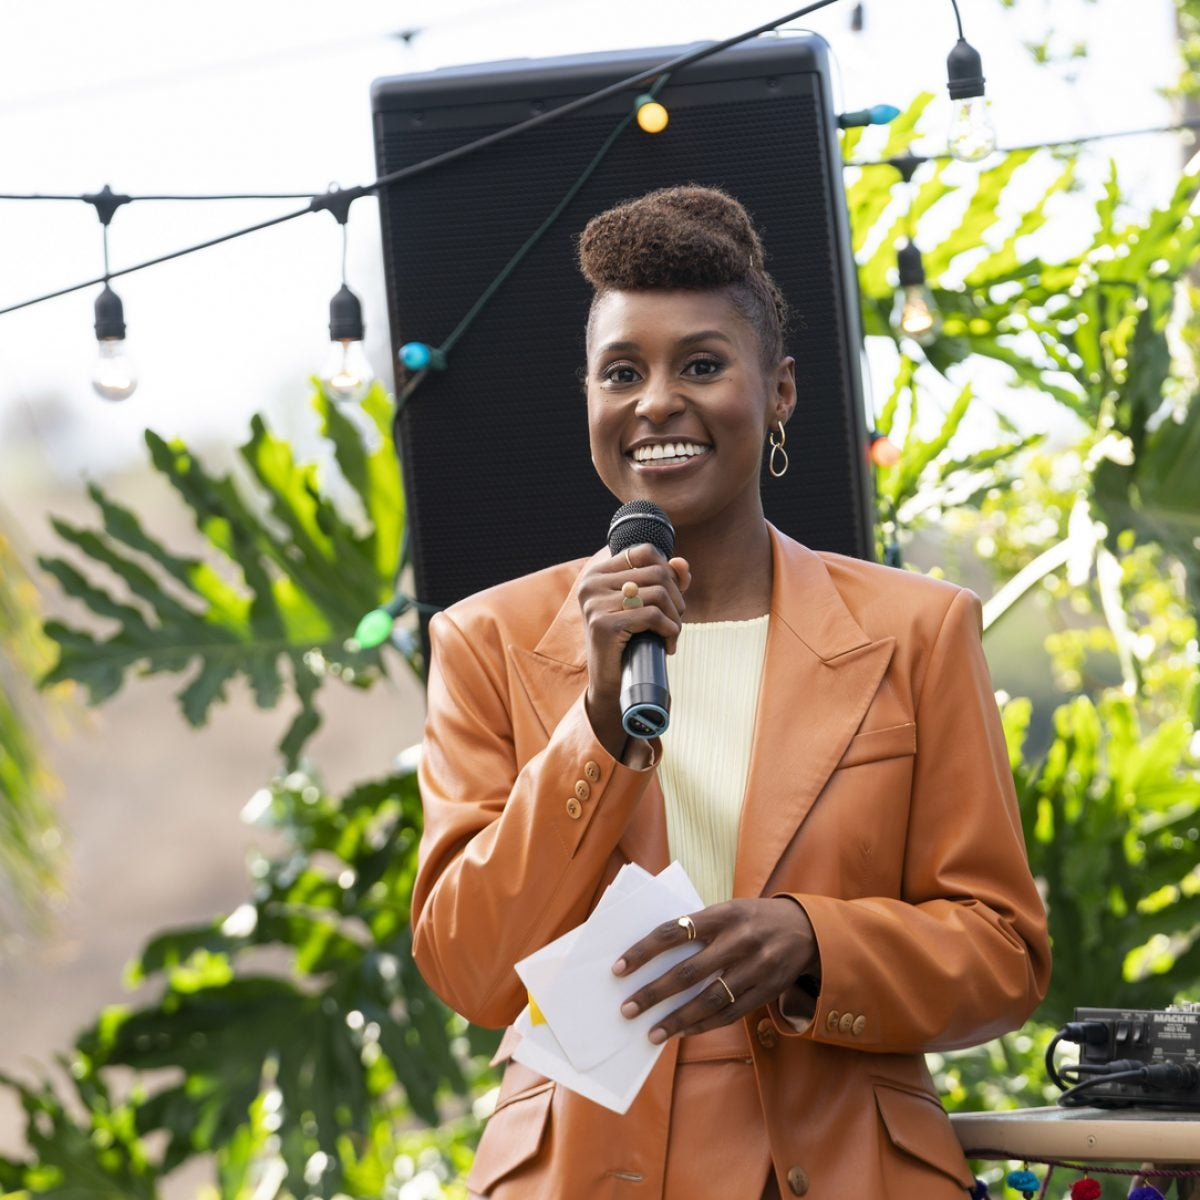 Check Out These Never-Before-Seen Images of 'Insecure' Season Four